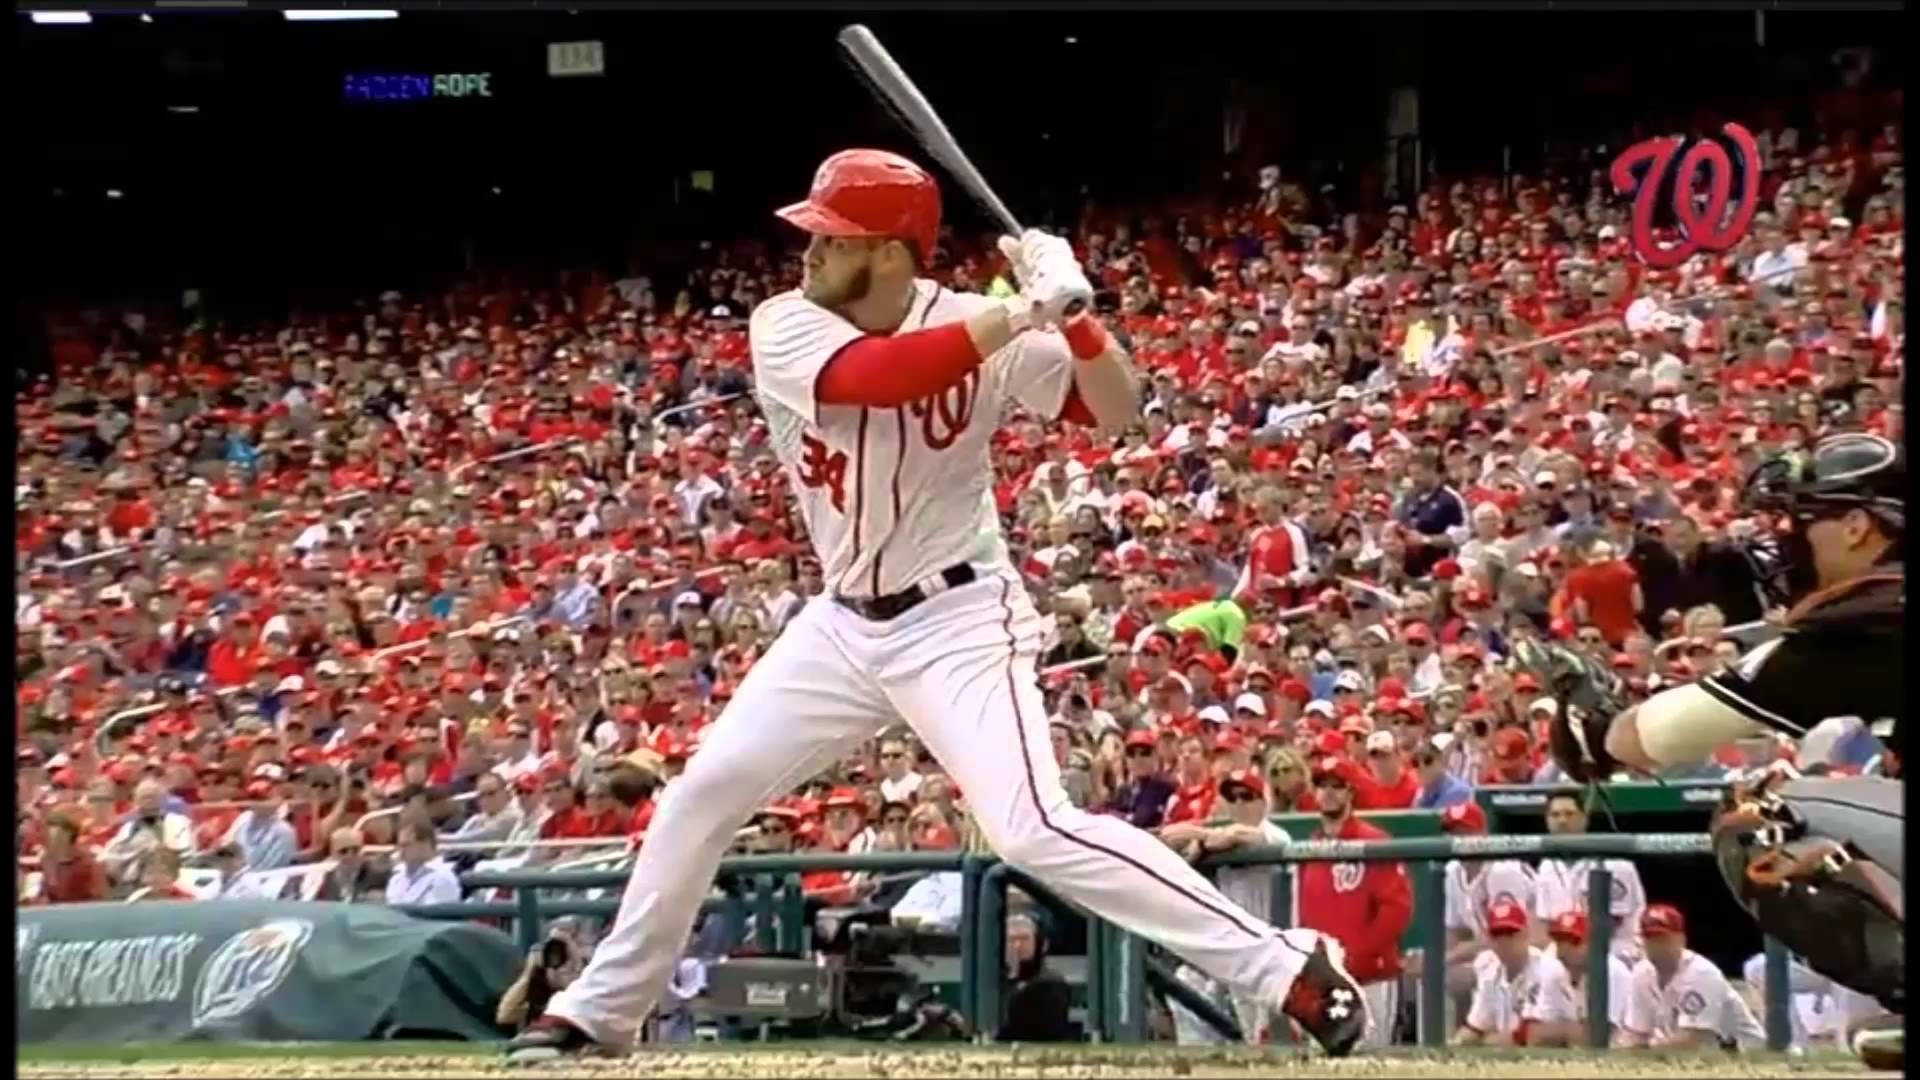 Bryce Harper Opening Day Maxresdefaultjpg 1920x1080